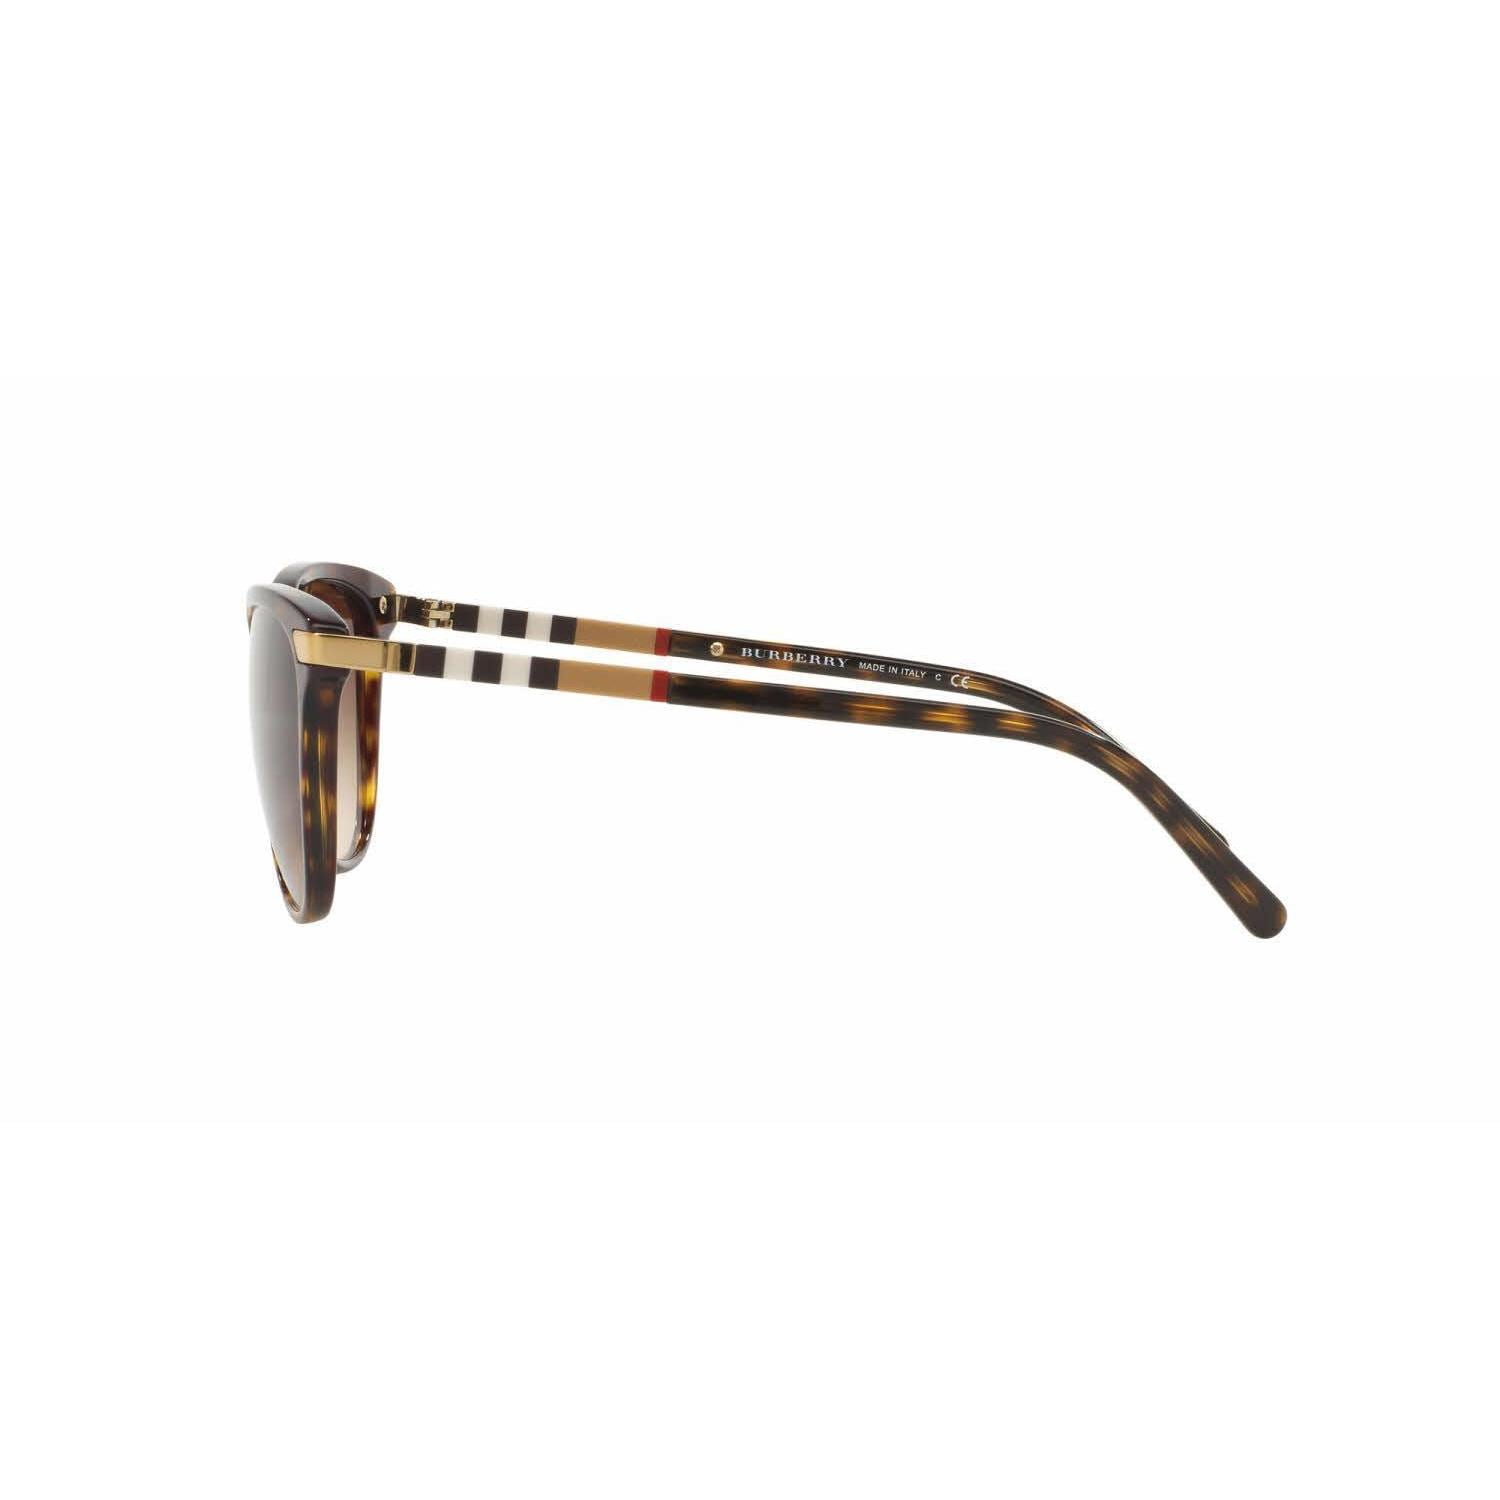 9557c5995a86 Shop Burberry Women BE4216 300213 Havana Plastic Cat Eye Sunglasses - Free  Shipping Today - Overstock - 13322737